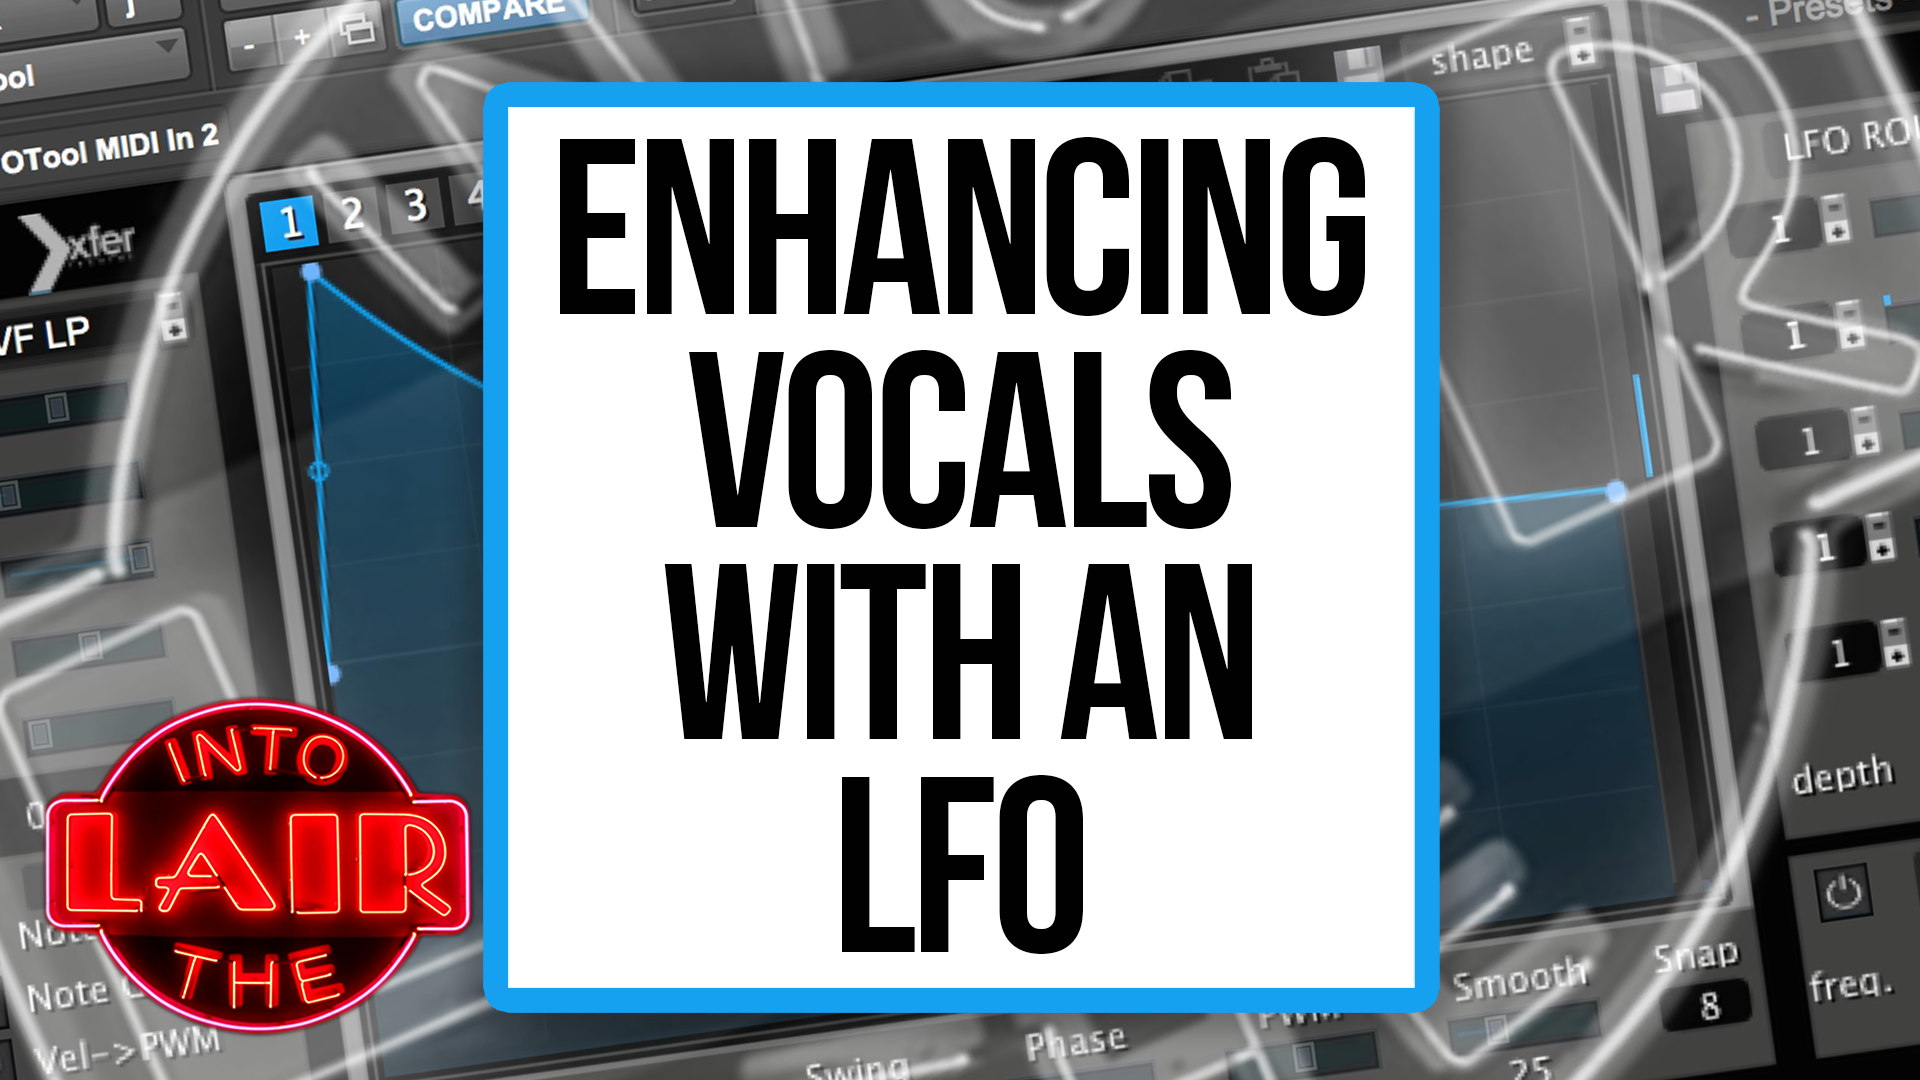 Enhancing Vocals With an LFO